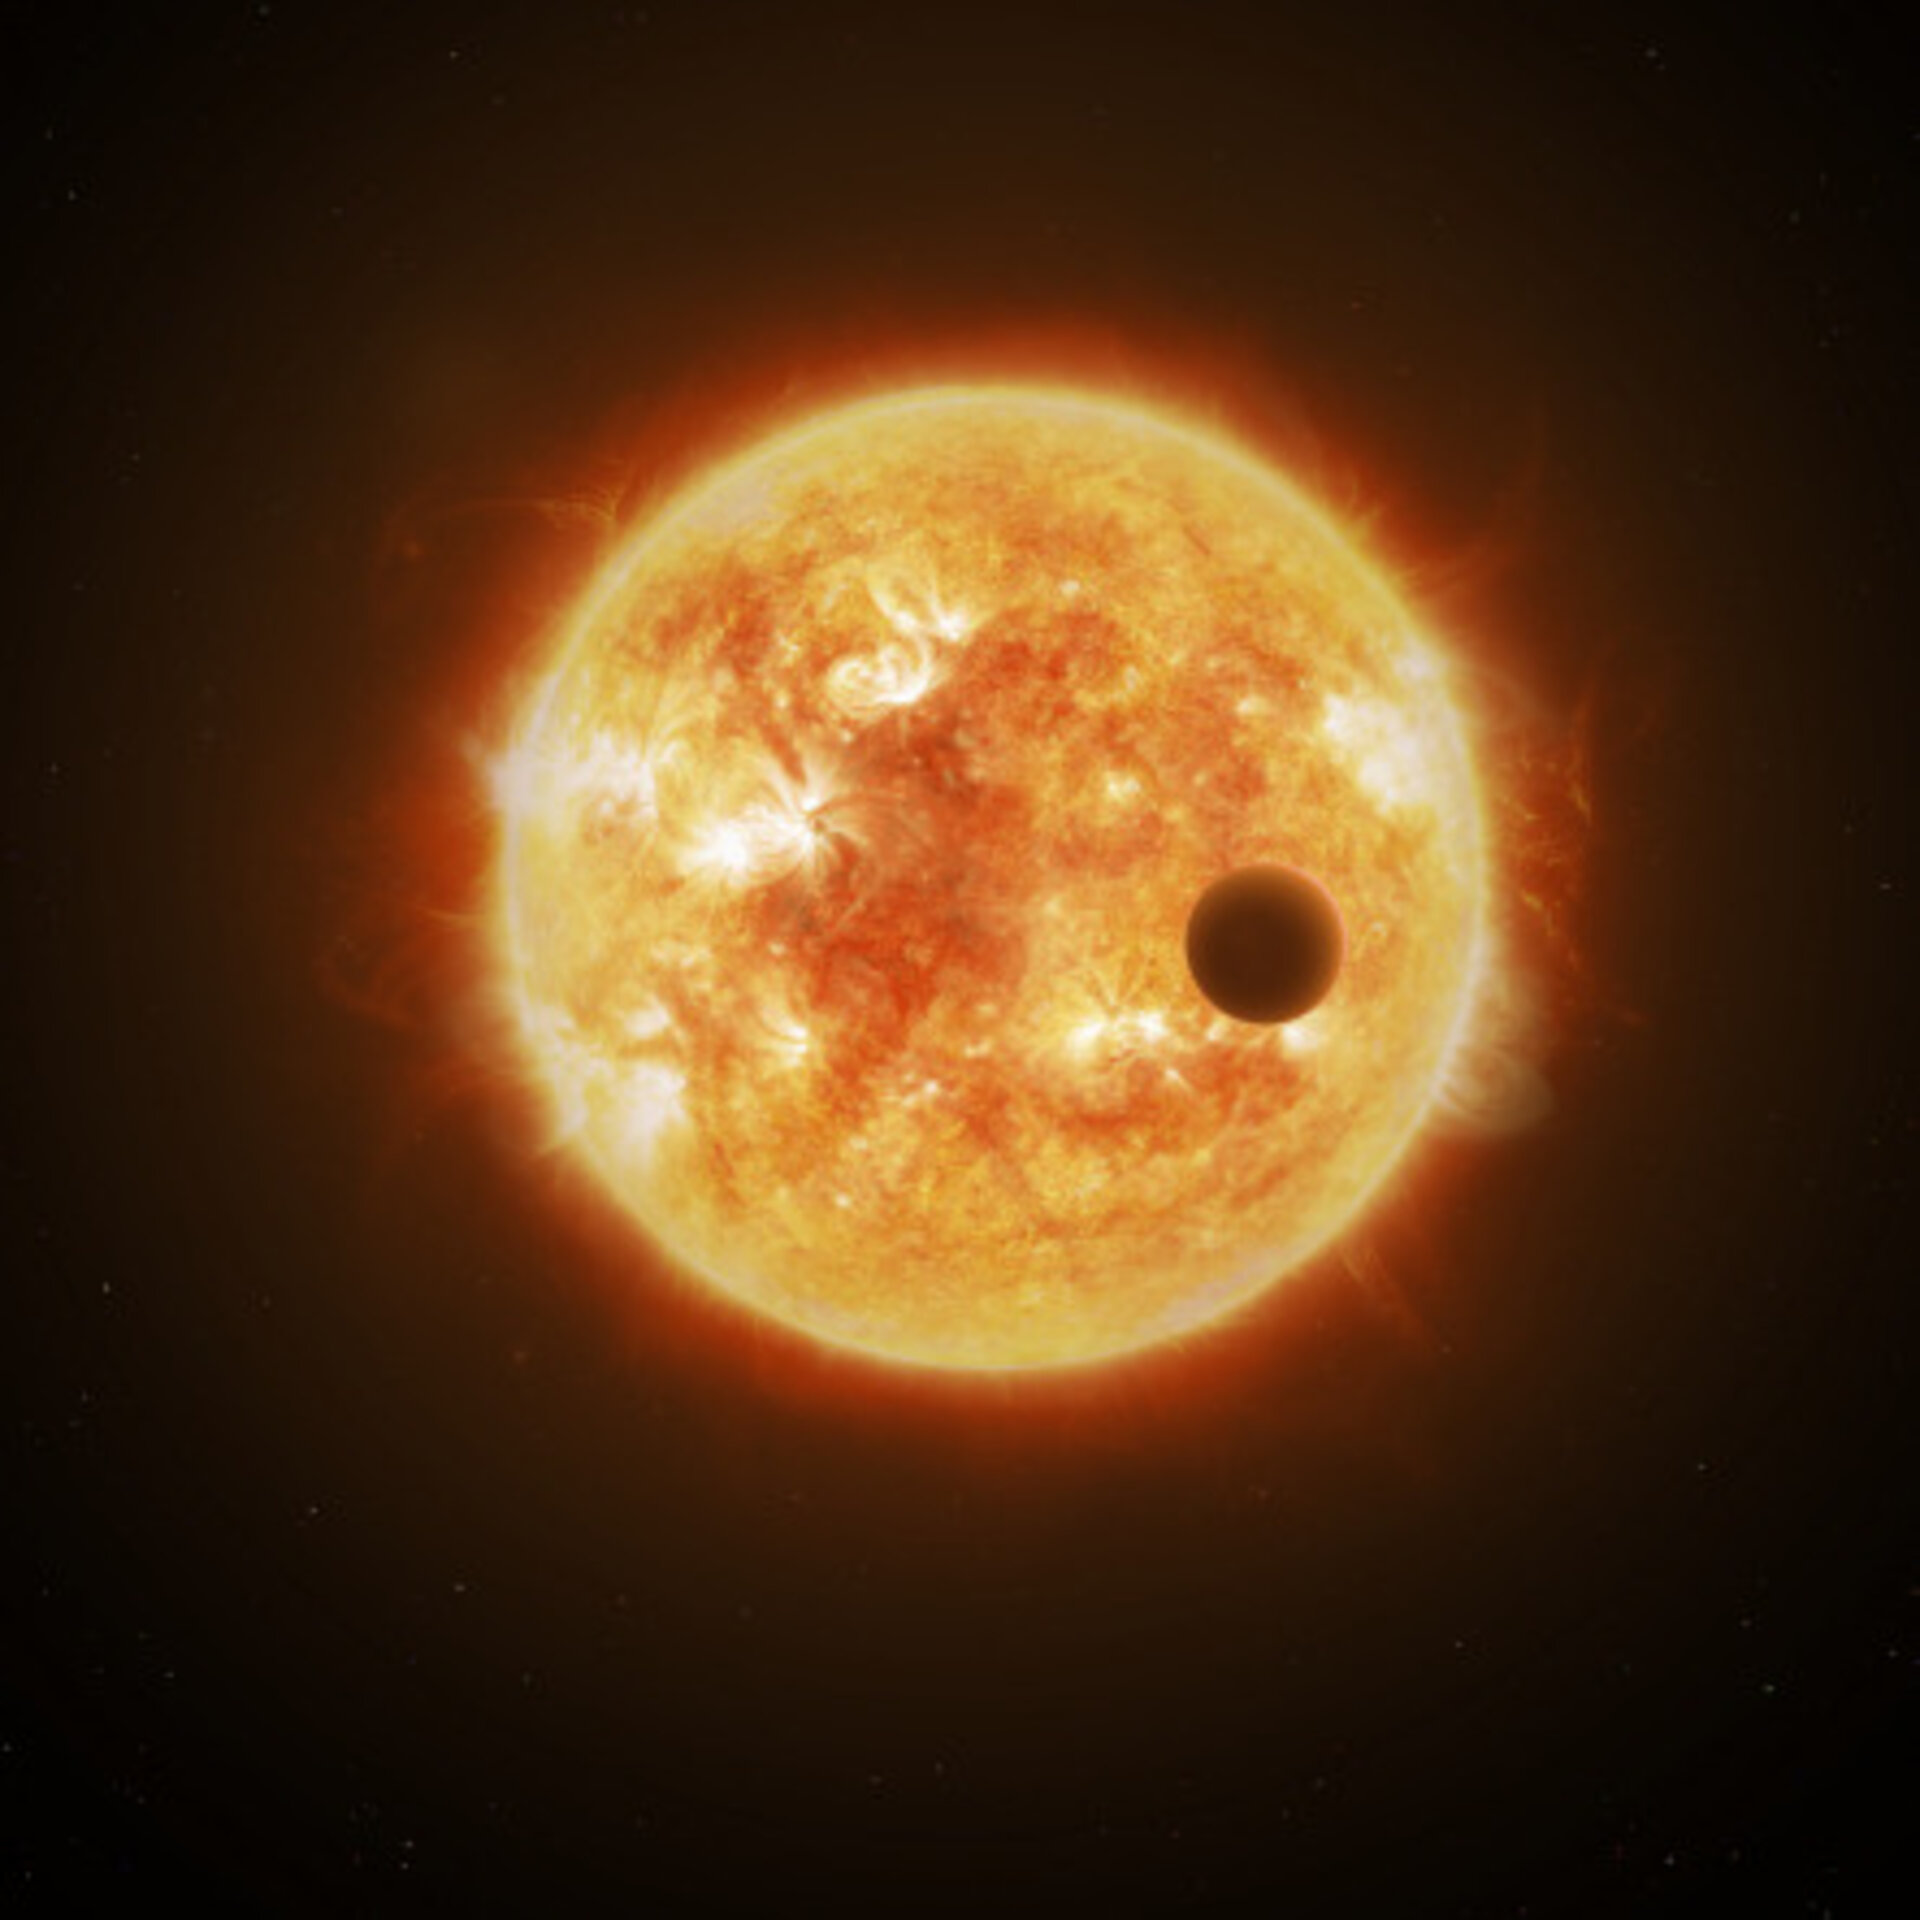 Artist's impression of a planet transiting a star